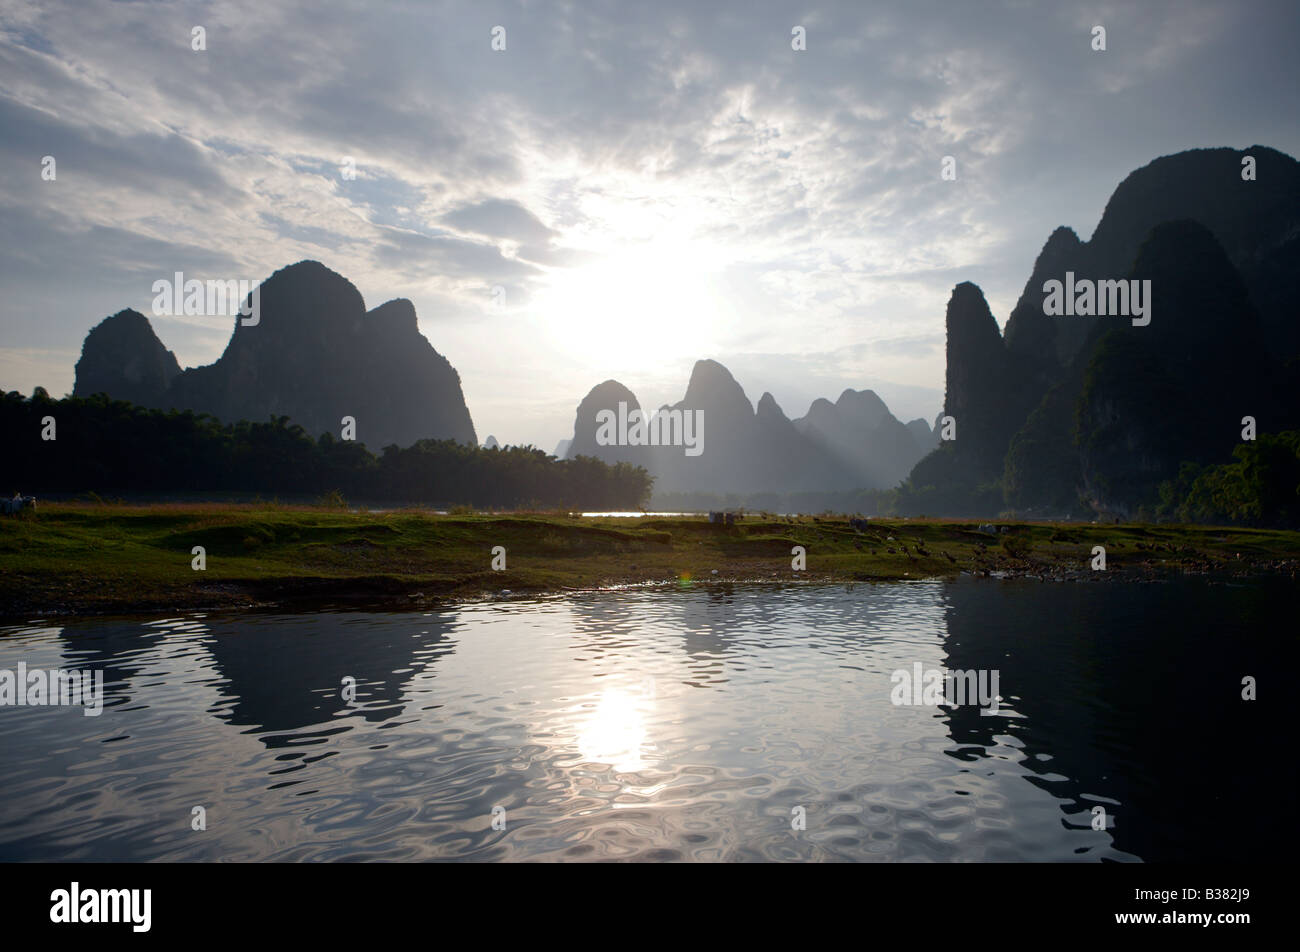 Xing Ping village Guilin district China - Stock Image